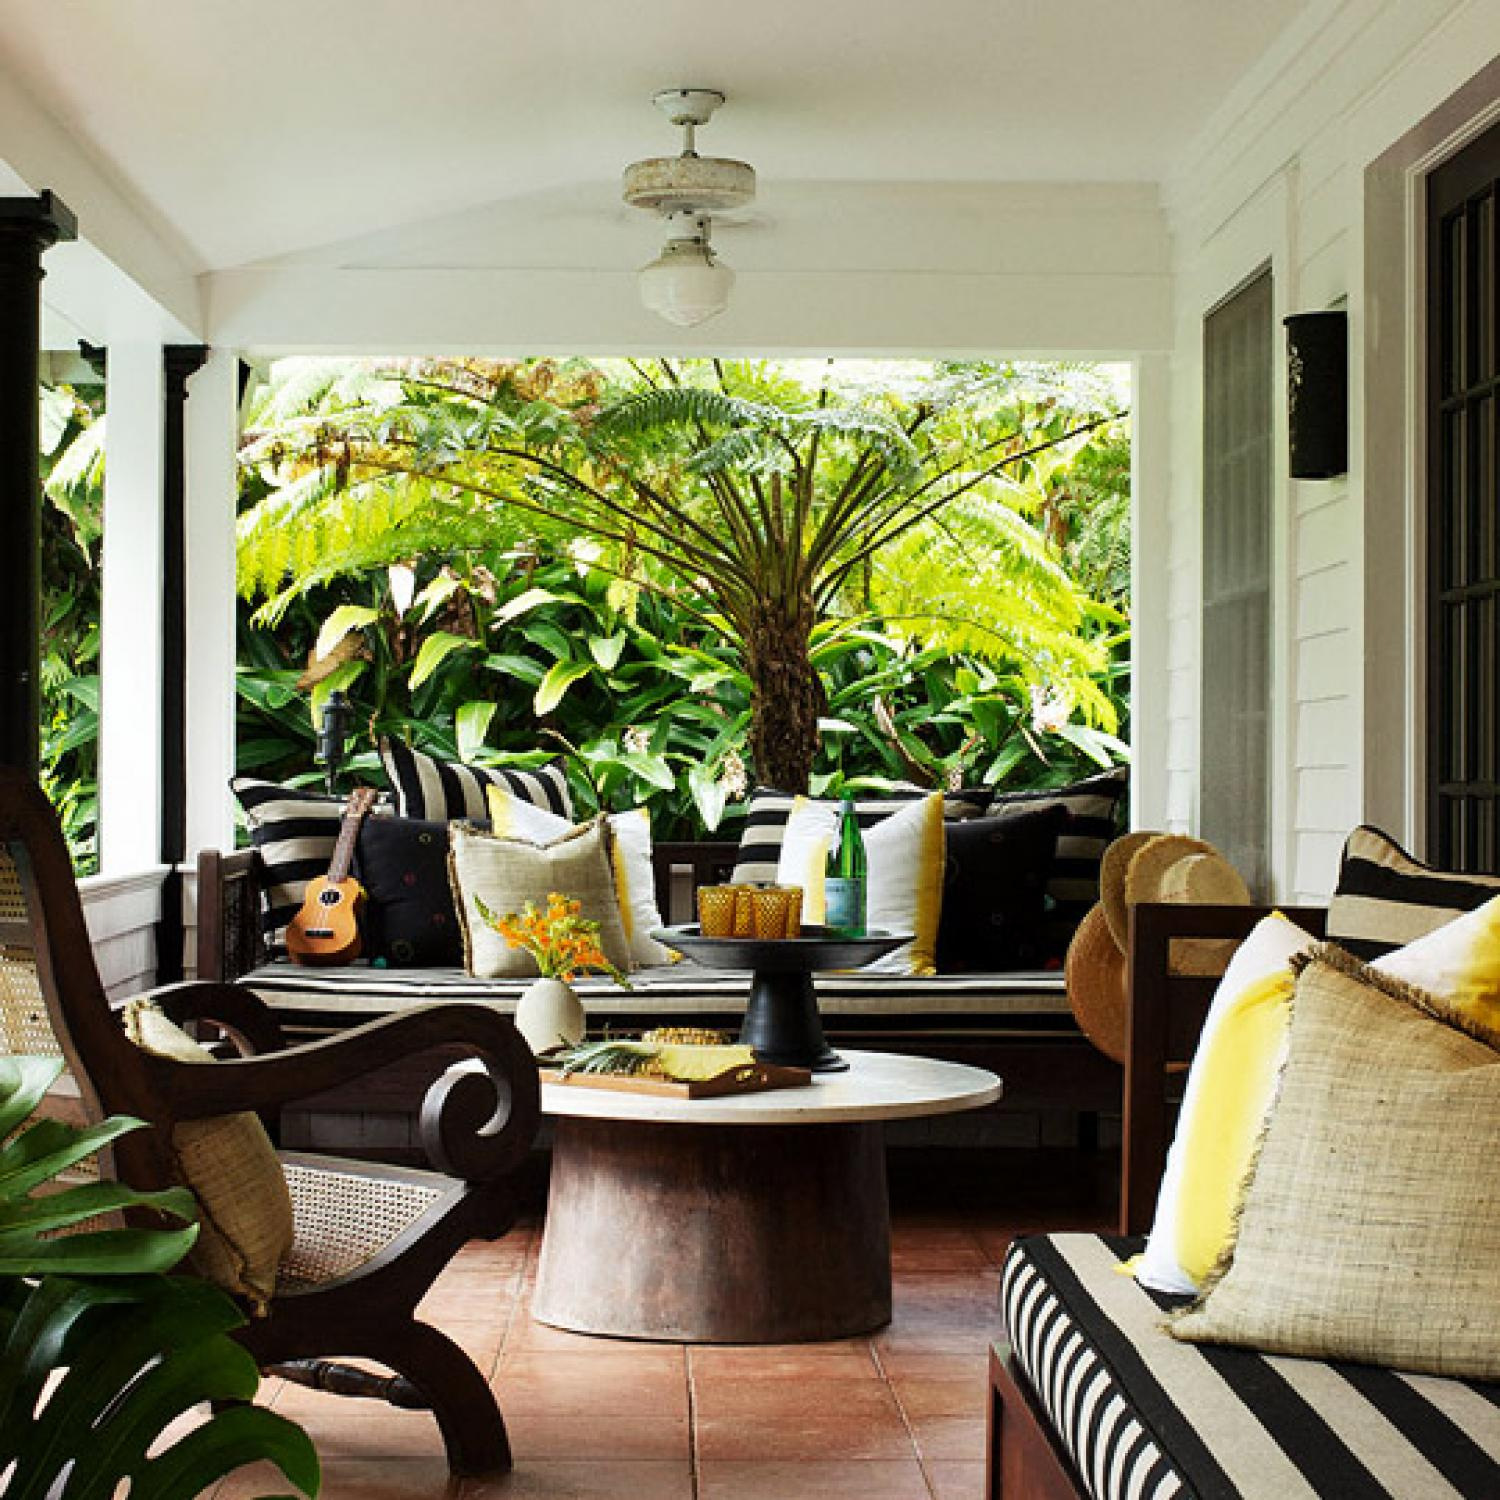 Interior Design Ideas At Home: Tropical Traditional Home